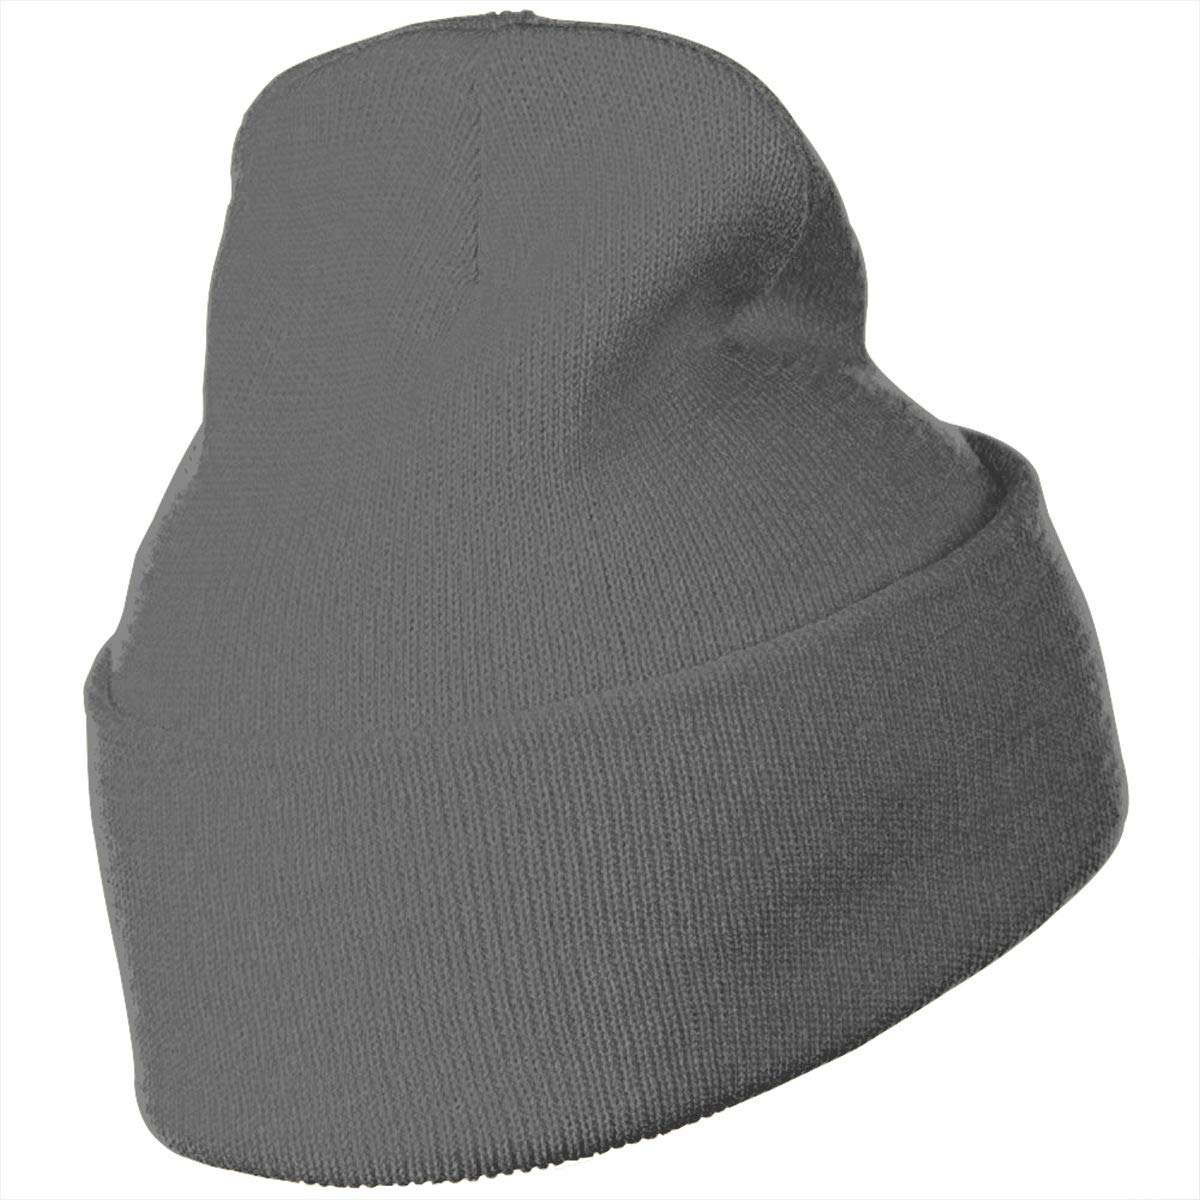 See from The Dark Unisex Stylish Knit Beanie Hat Slouchy Serious Style Cap